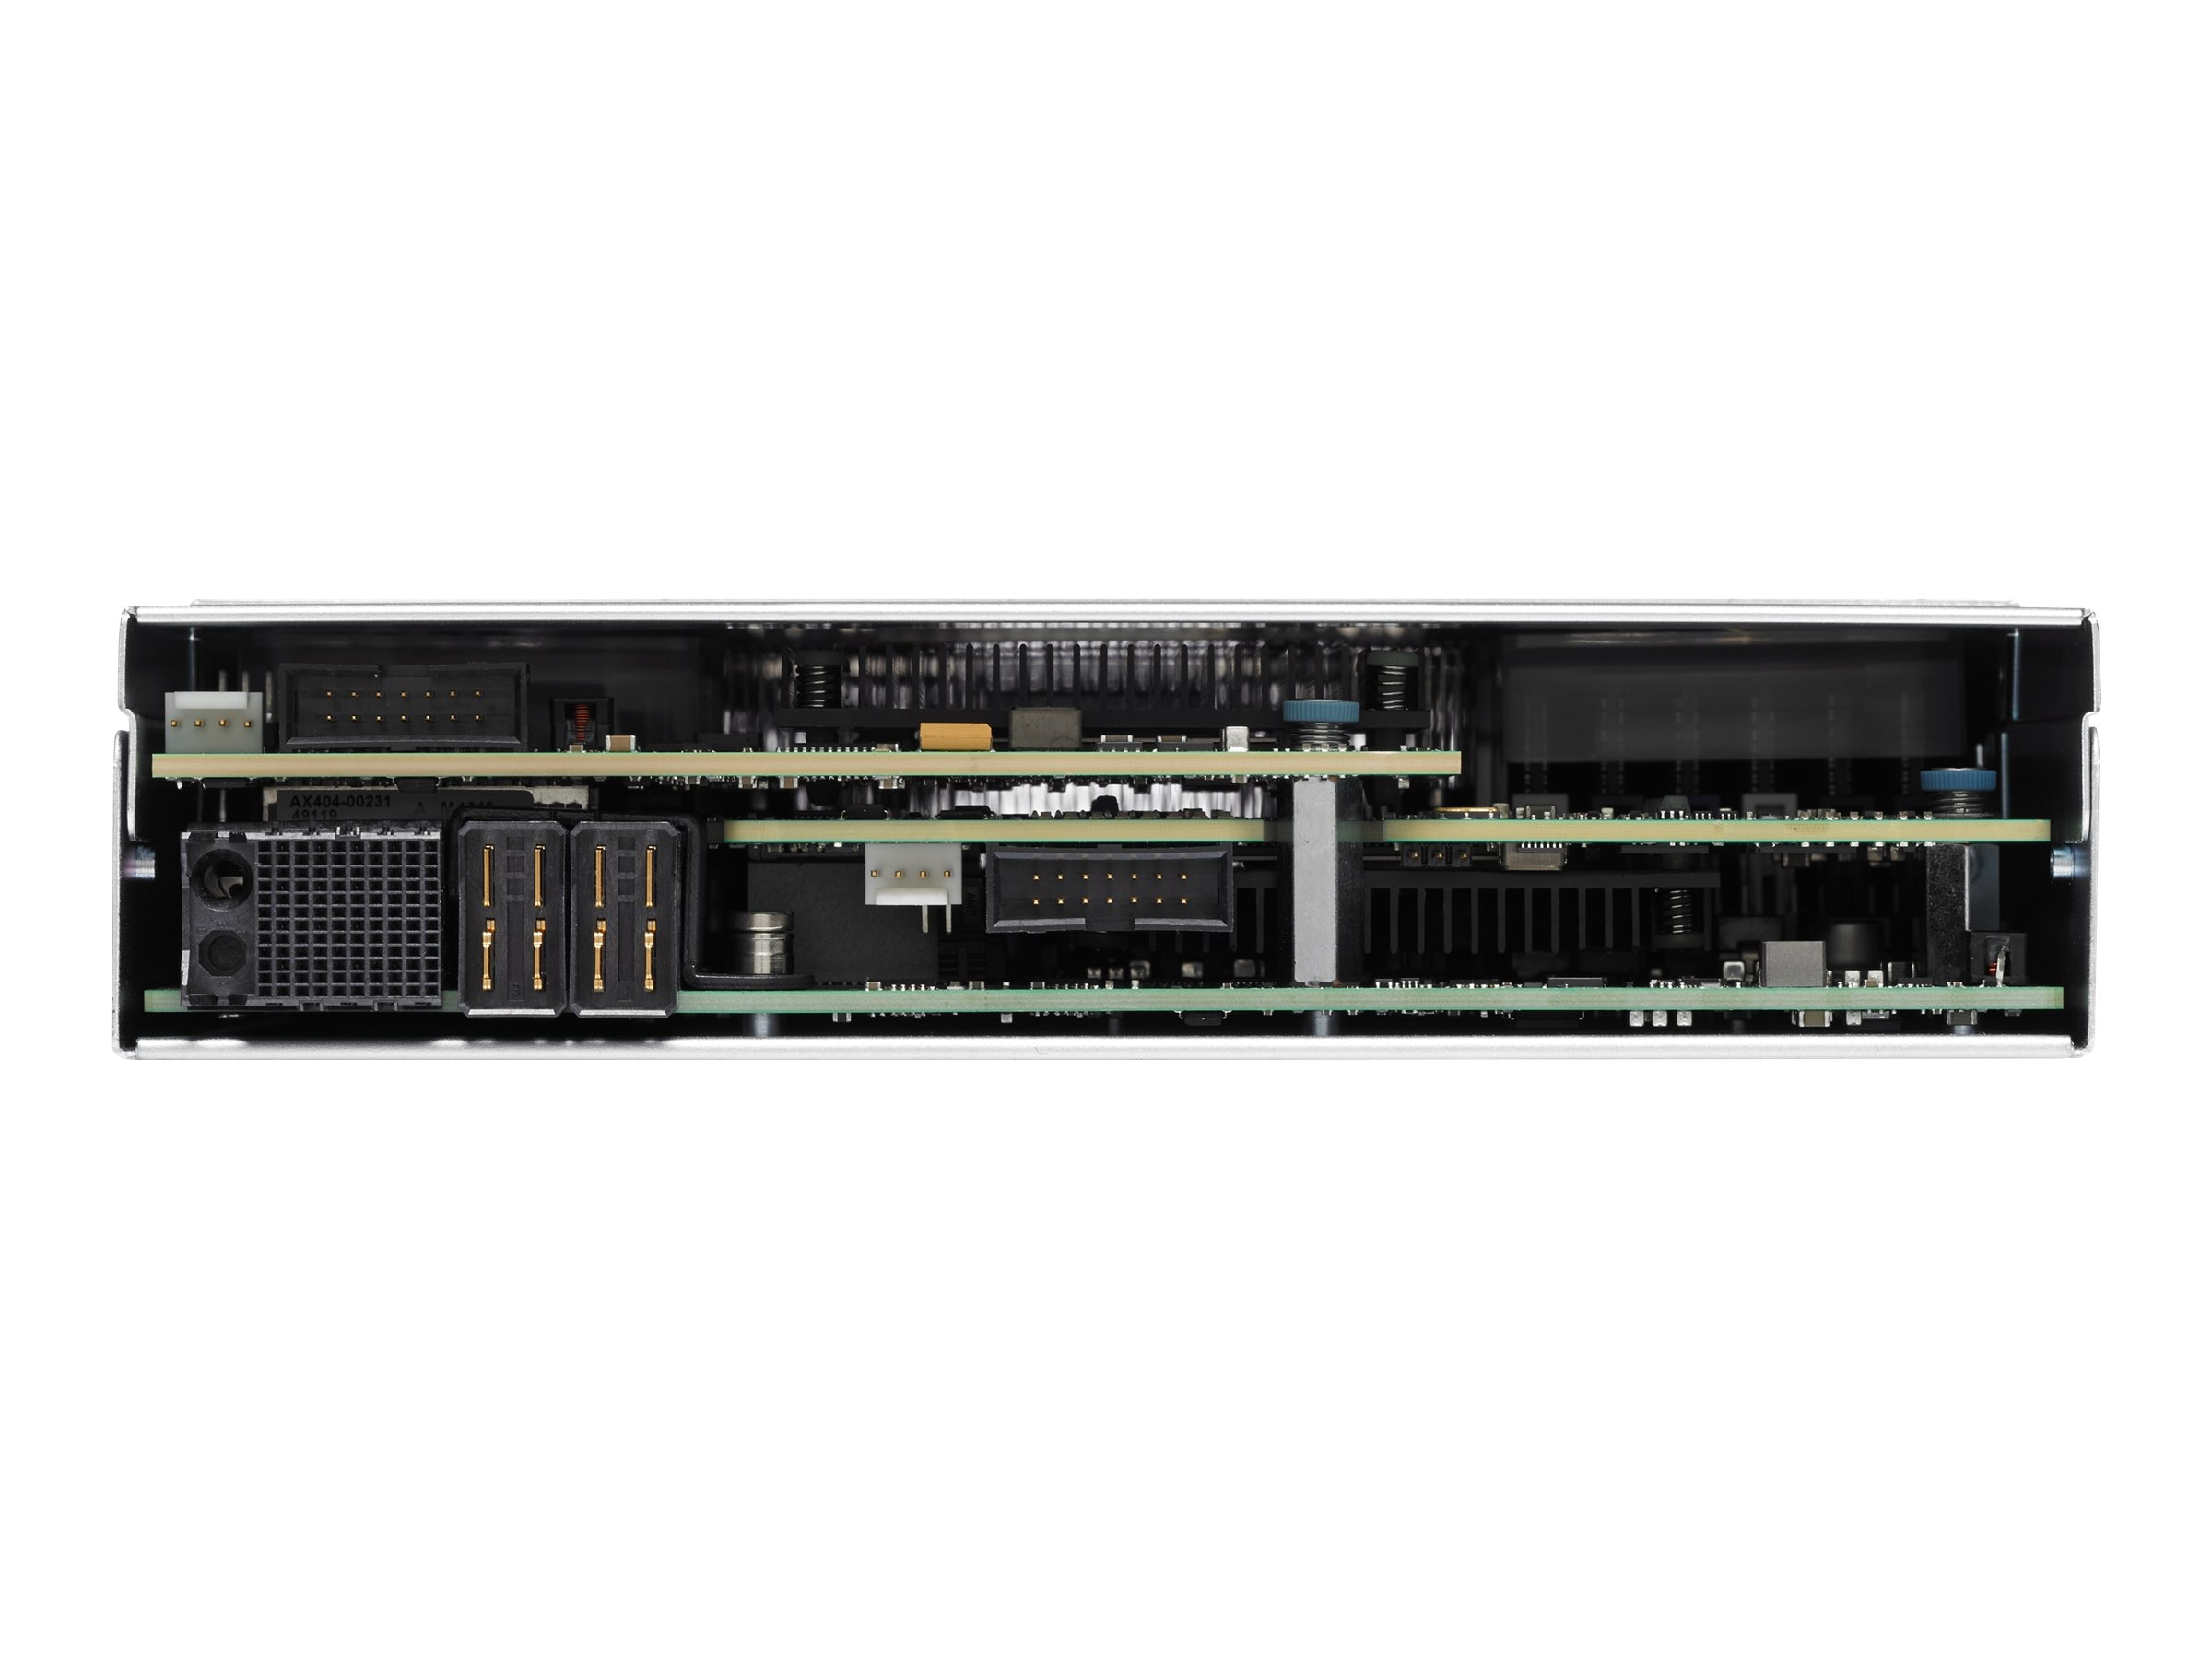 Cisco UCS-SP-B200M4-A1 Image 4